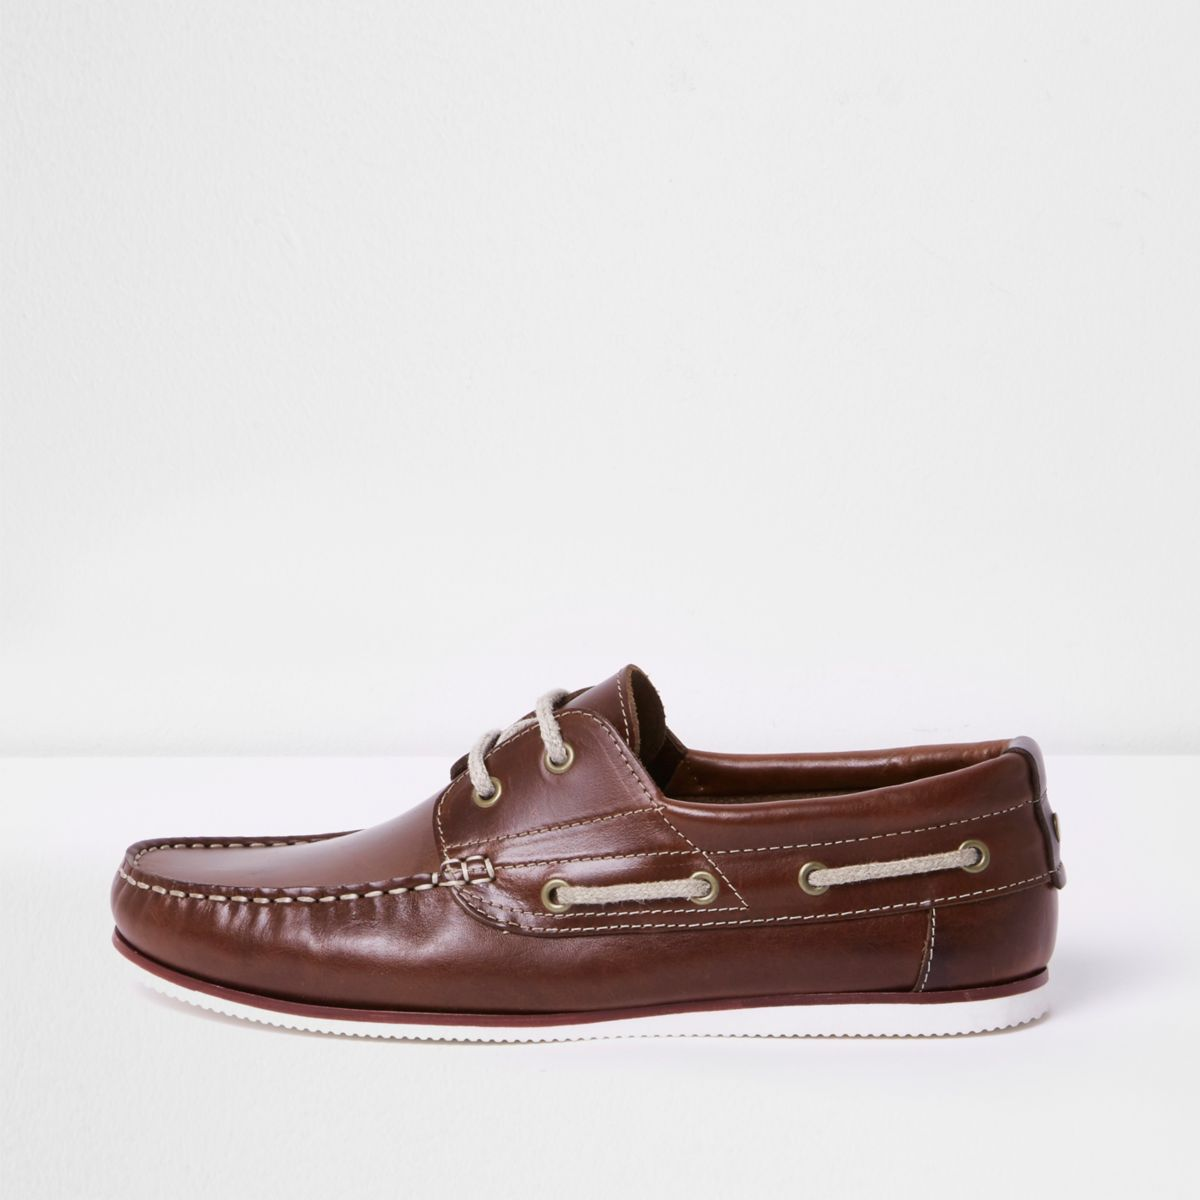 Burgundy leather rope lace-up boat shoes